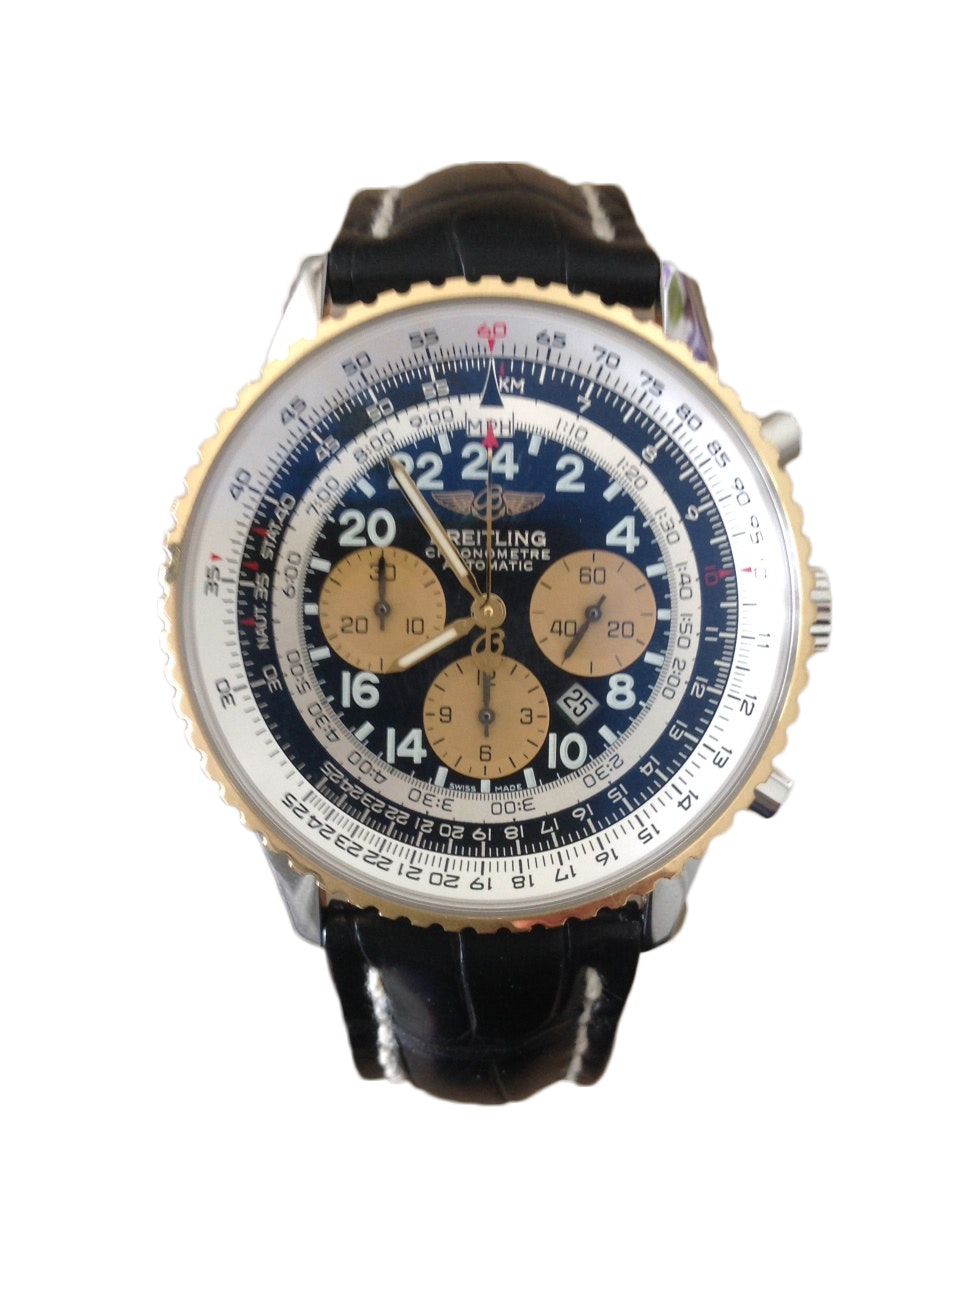 Breitling Navitimer Cosmonaute Limited Edition D22322